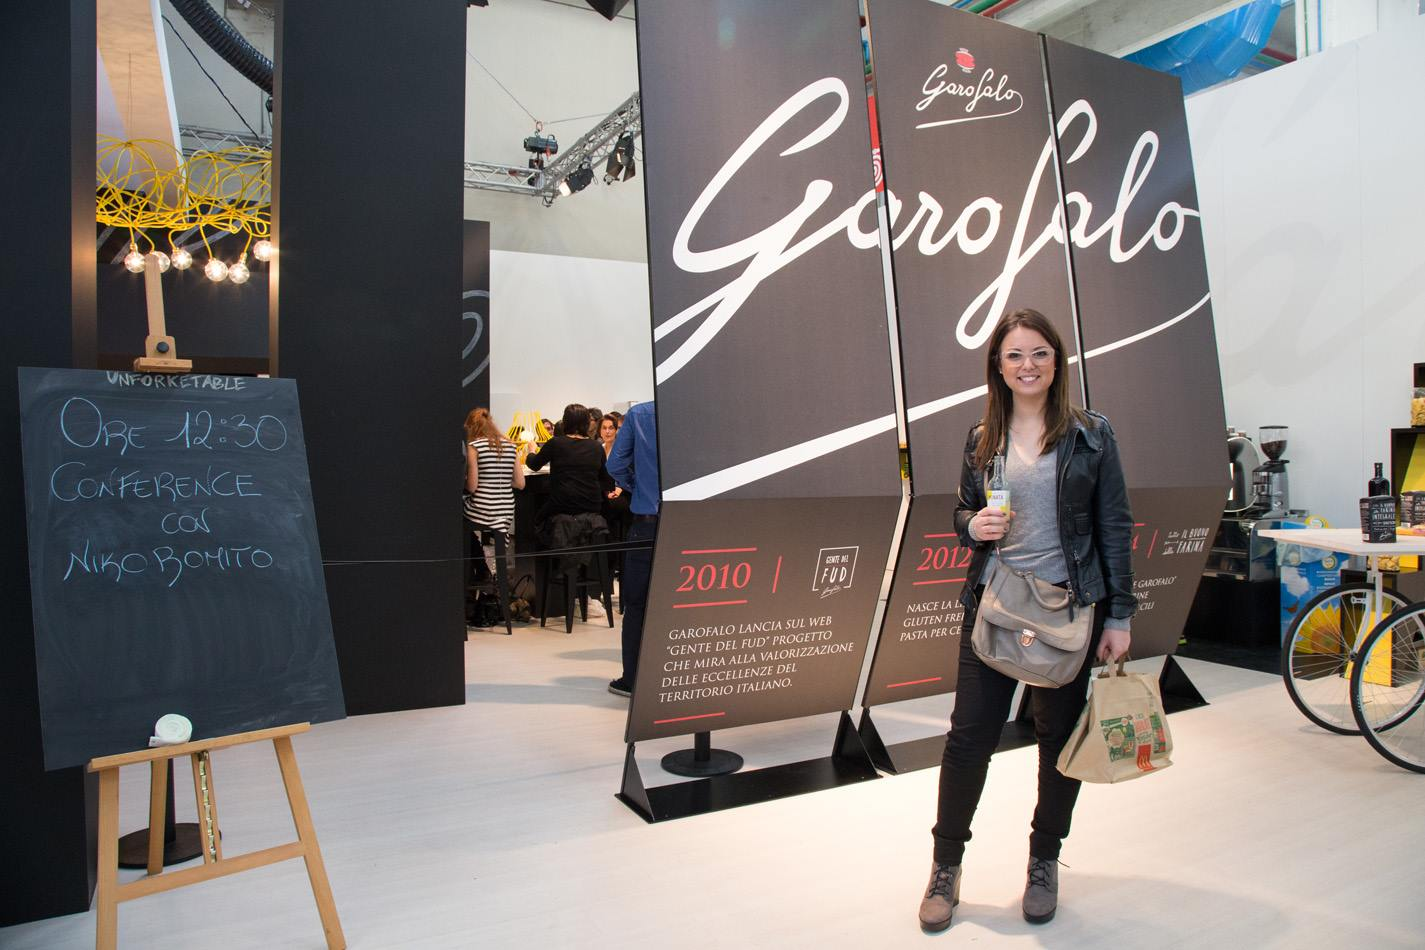 http://www.salonedelgusto.com/it/